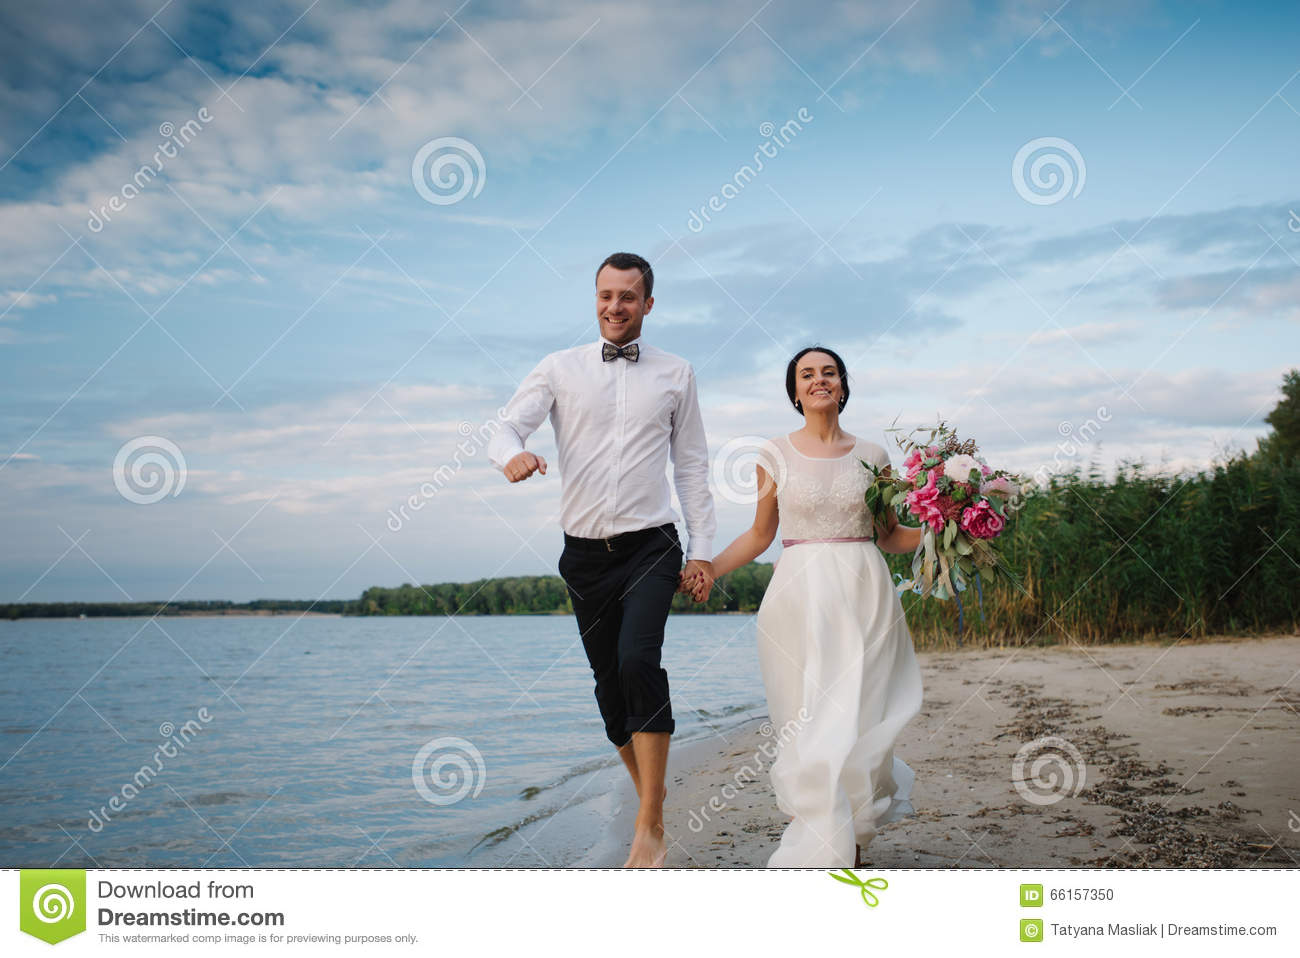 Admirable The Bride And Groom Running On The Beach Wedding Download Free Architecture Designs Scobabritishbridgeorg